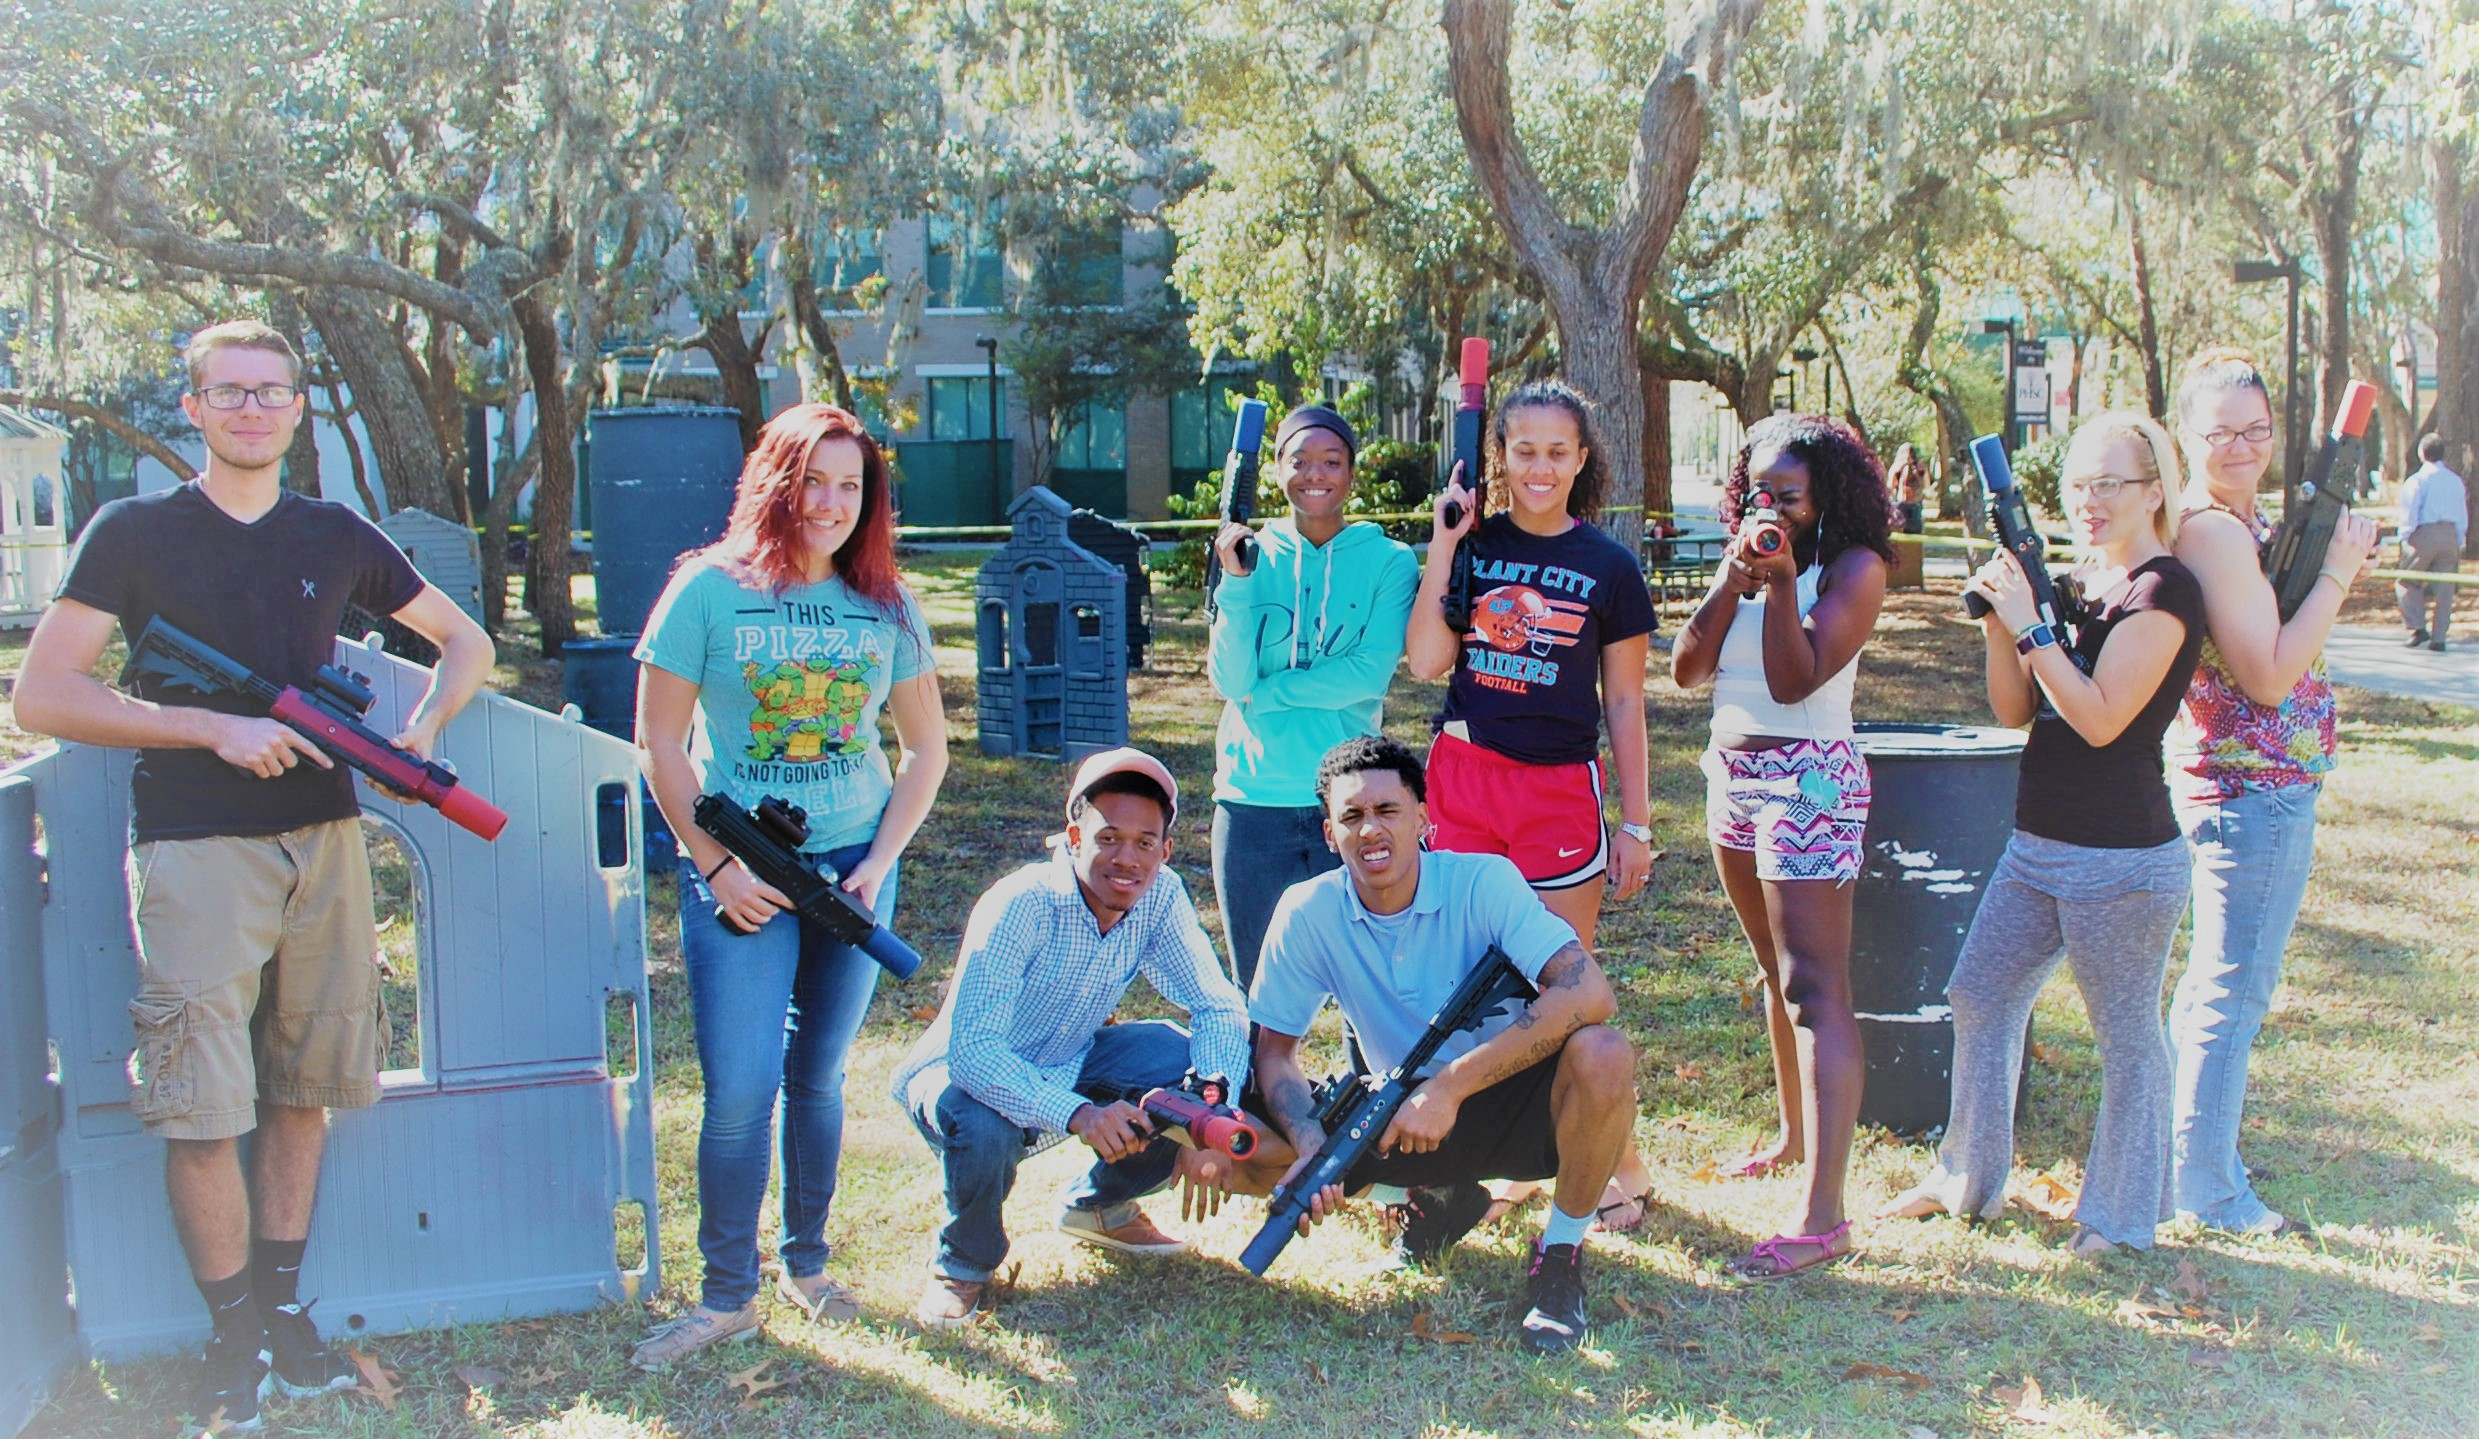 College Events in Florida - Stealth Mobile Laser Tag (46)